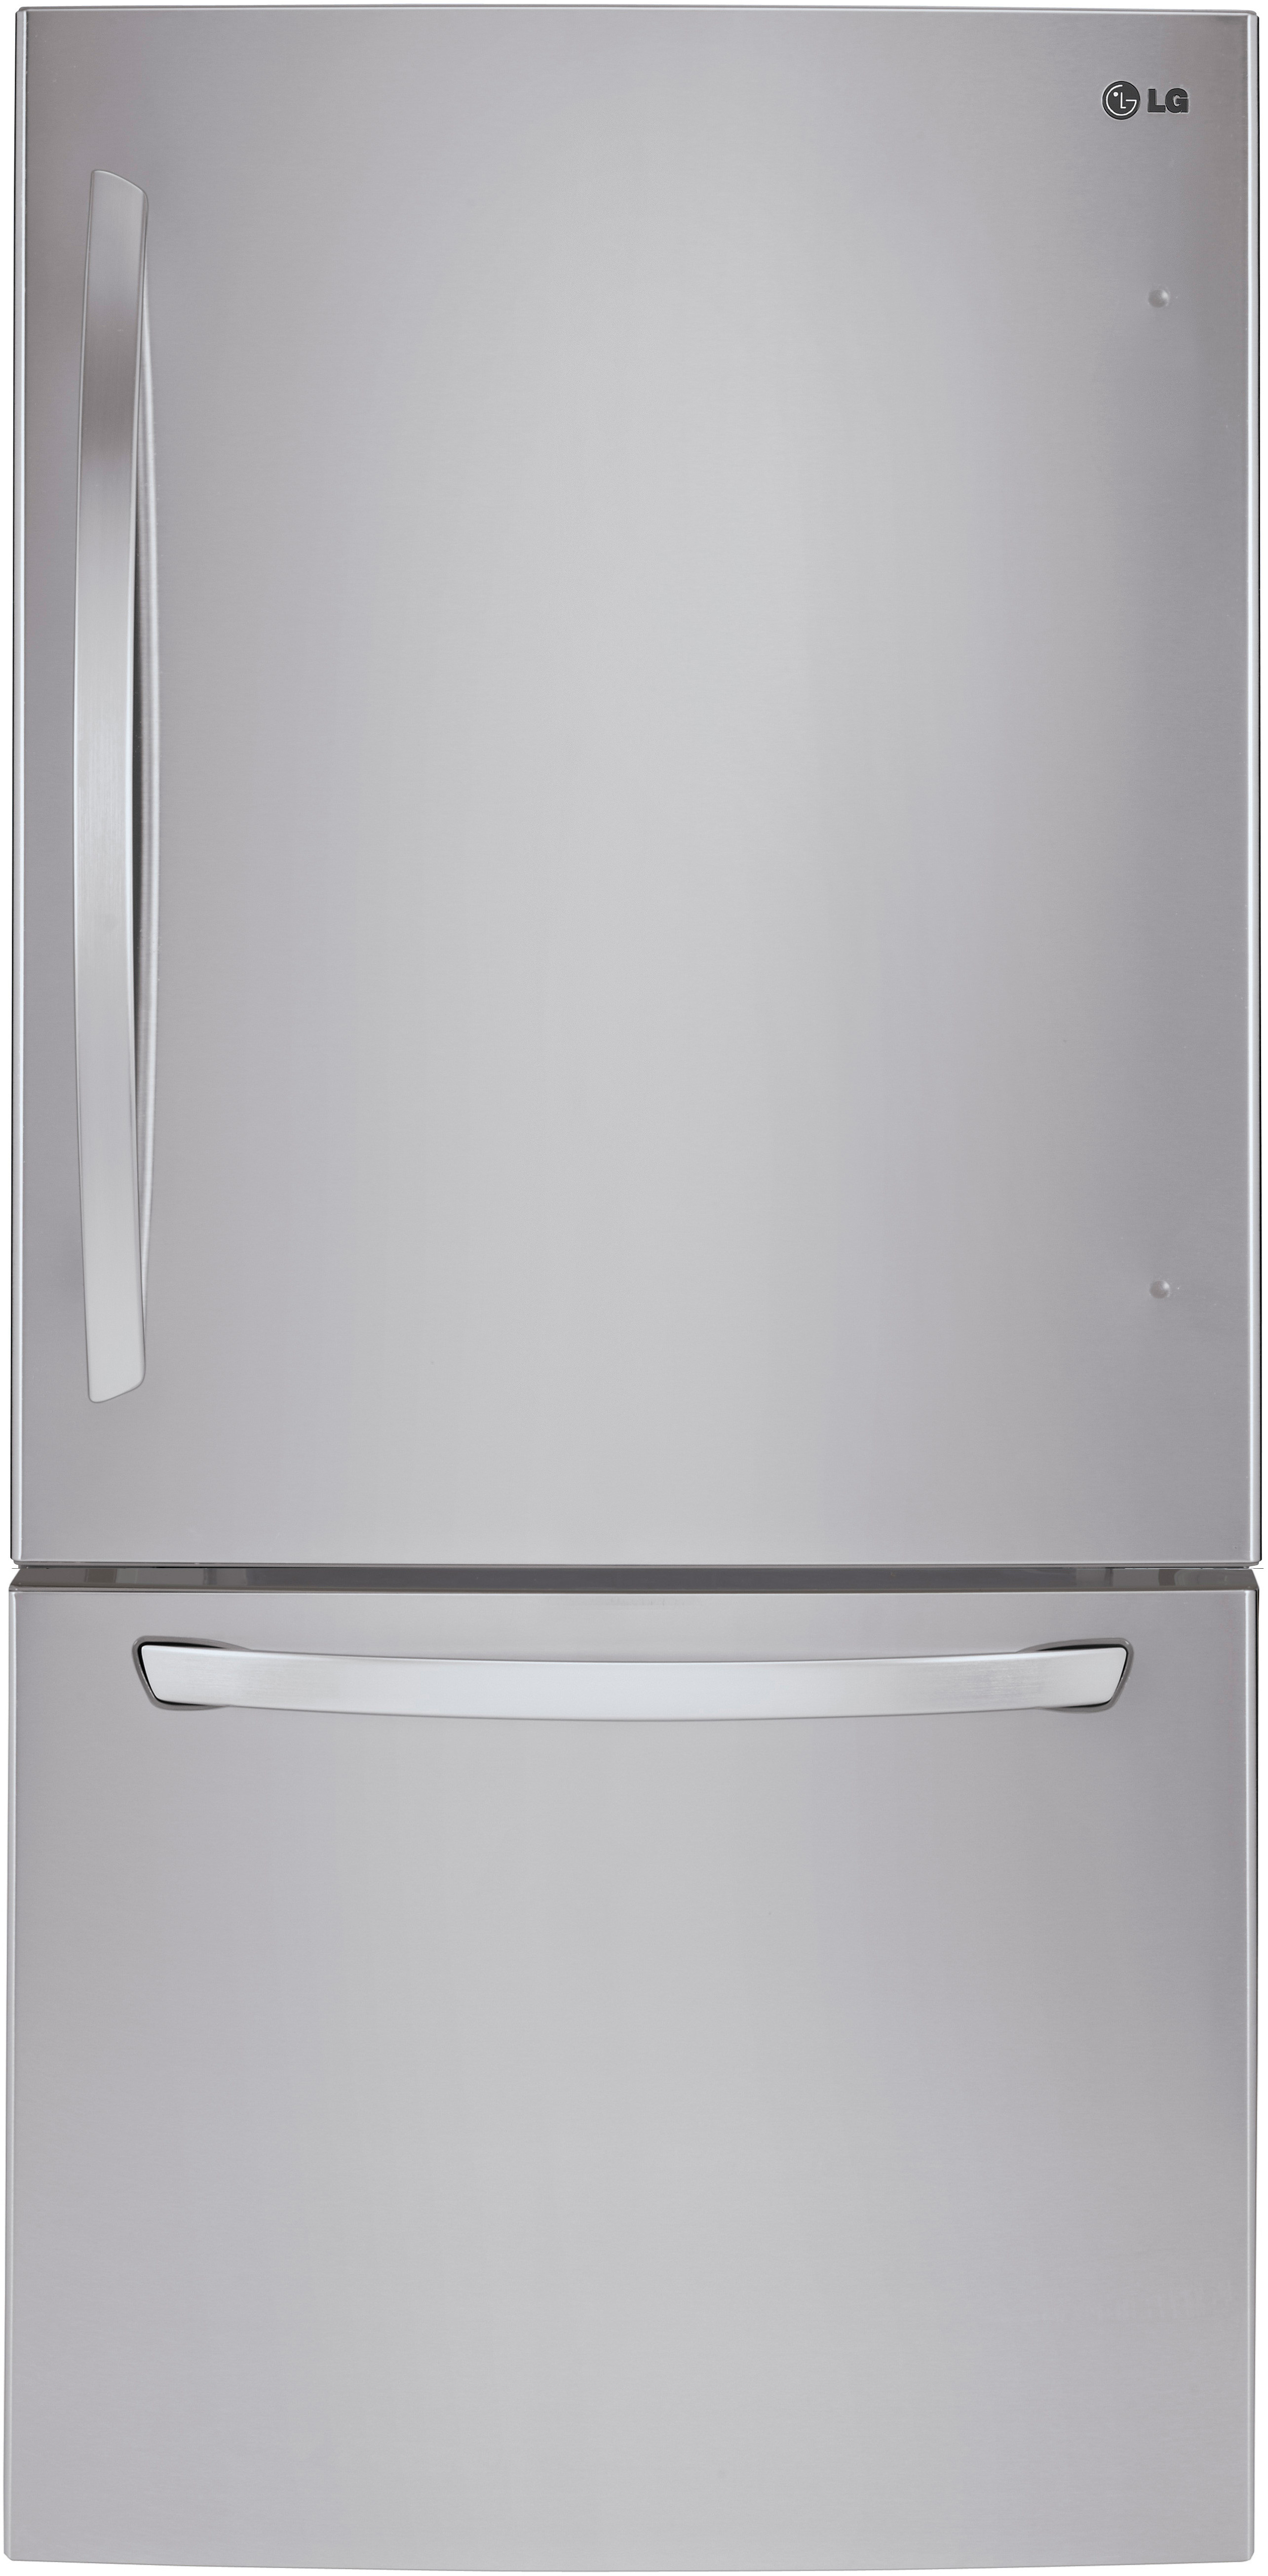 Lg Ldcs22220s 30 Inch Bottom Freezer Refrigerator With